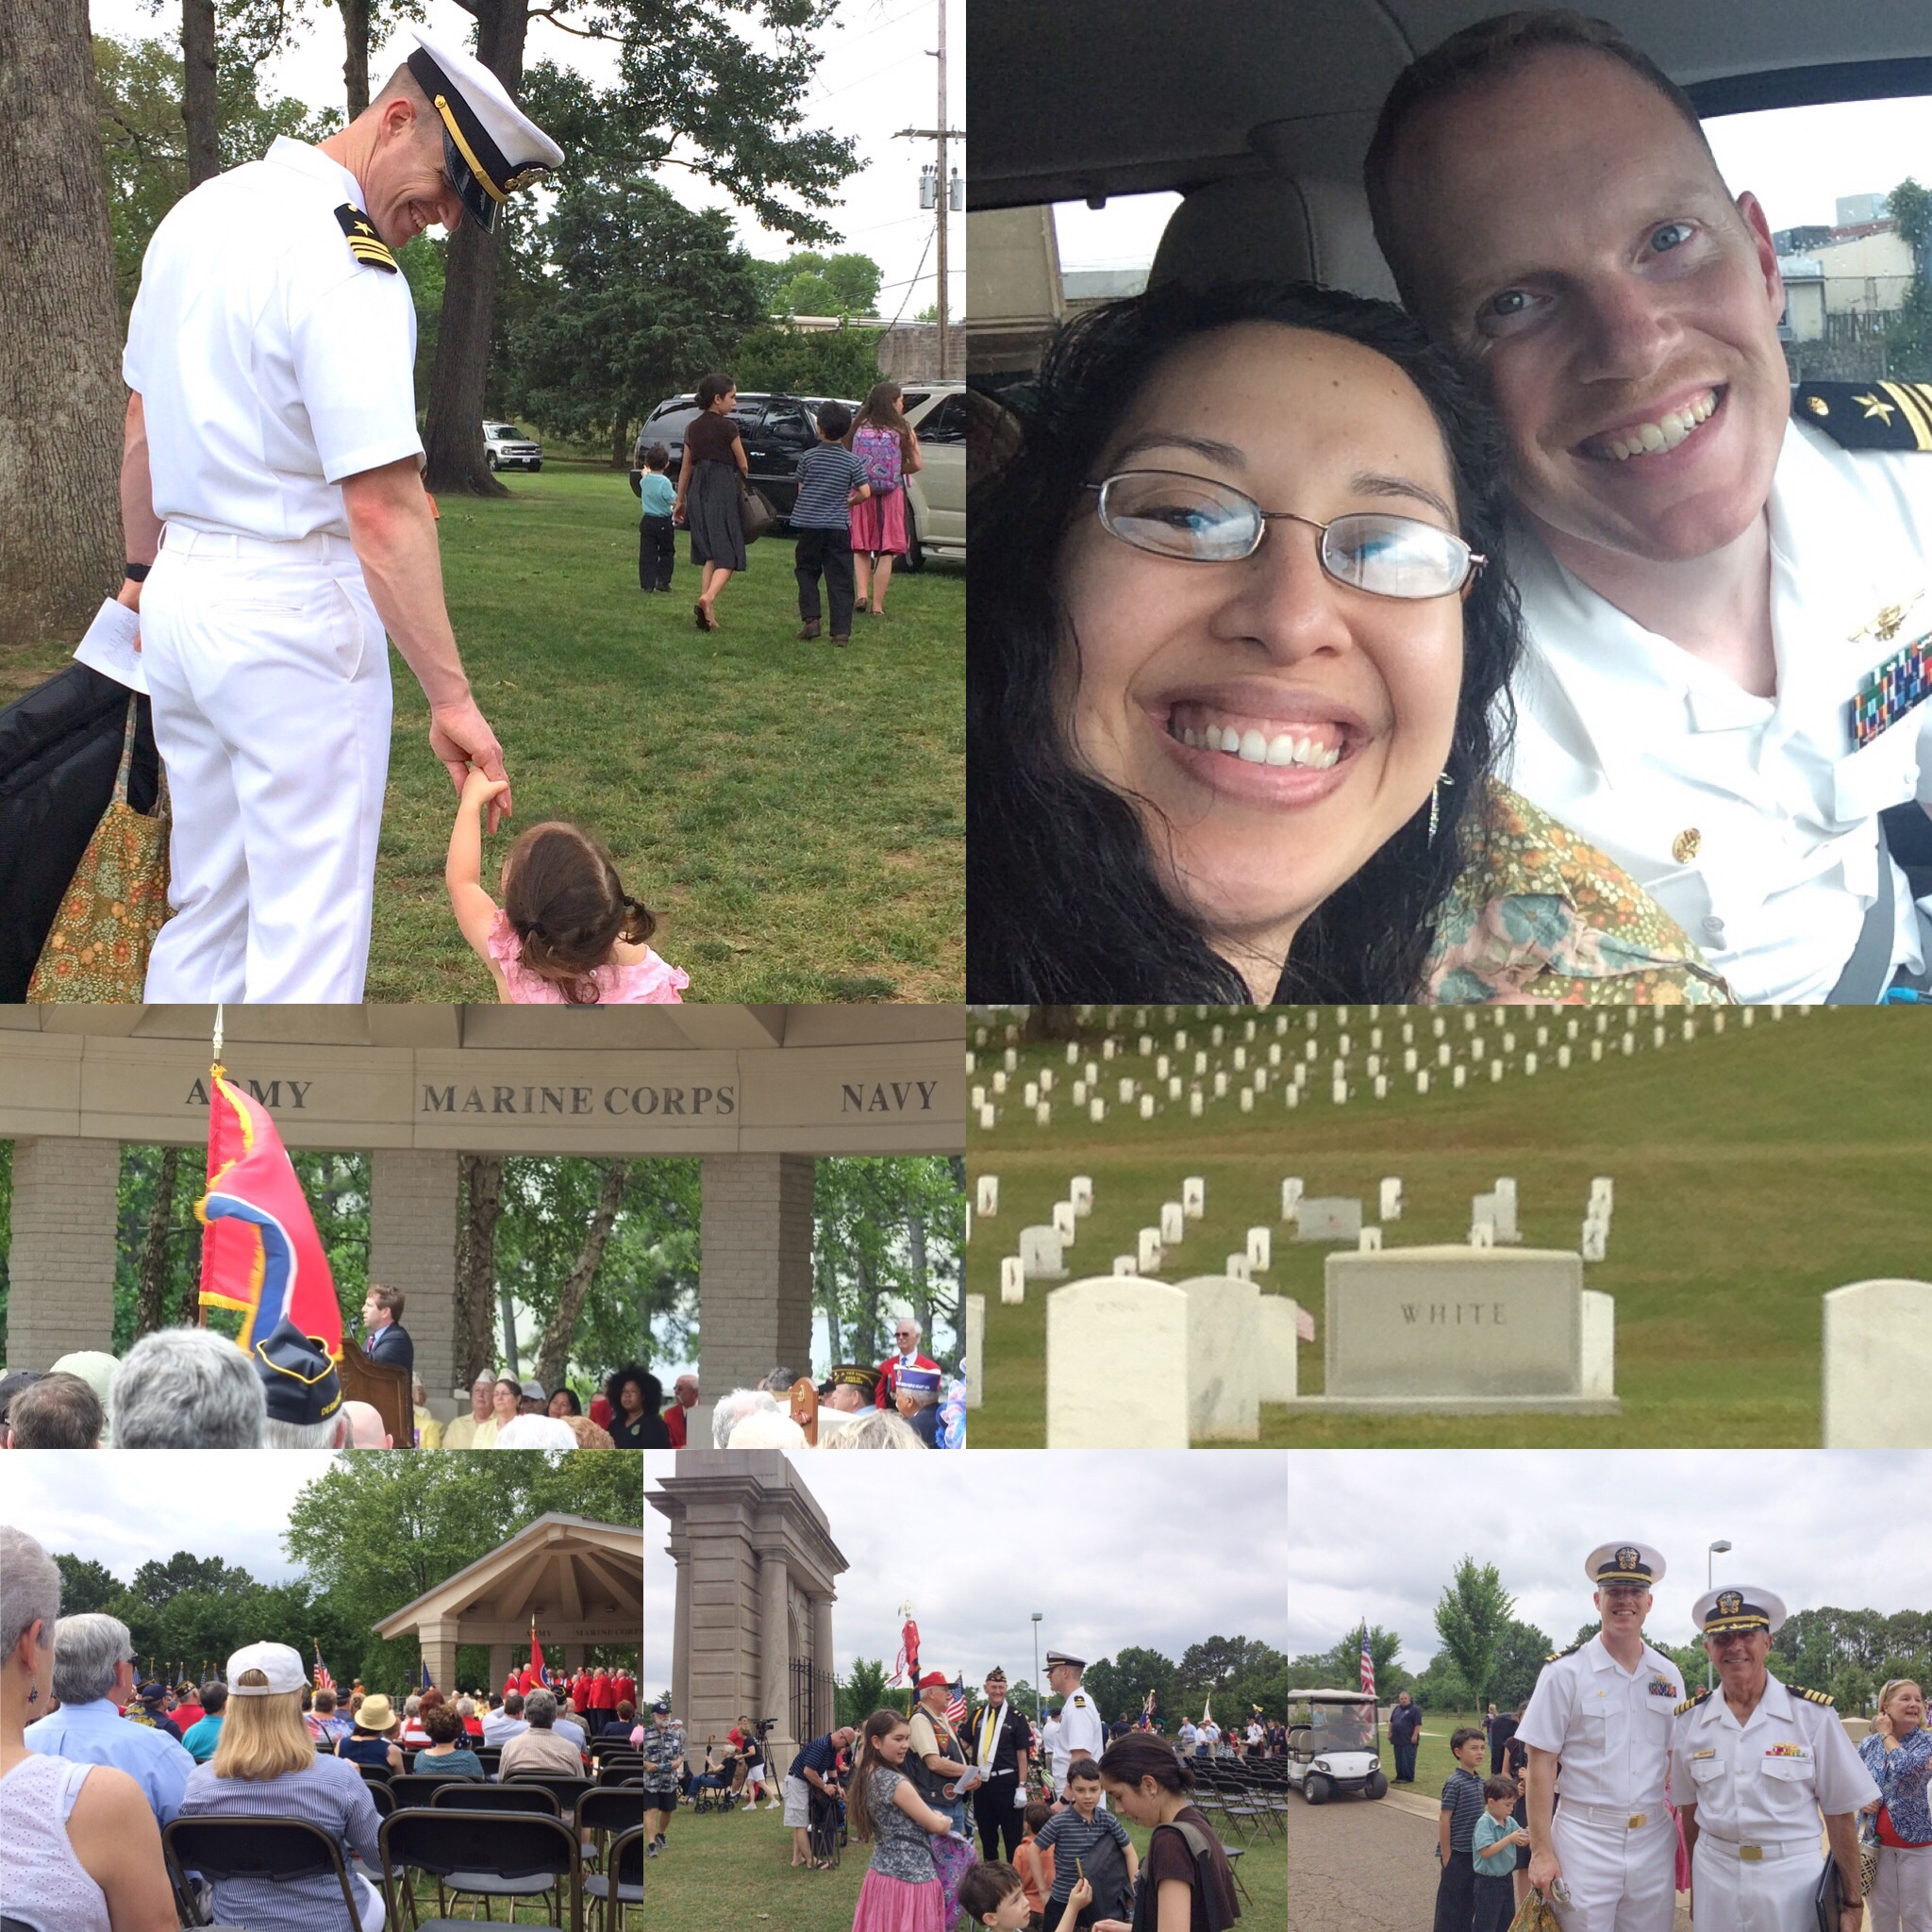 Last year's Memorial Day at the Chattanooga National Cemetery